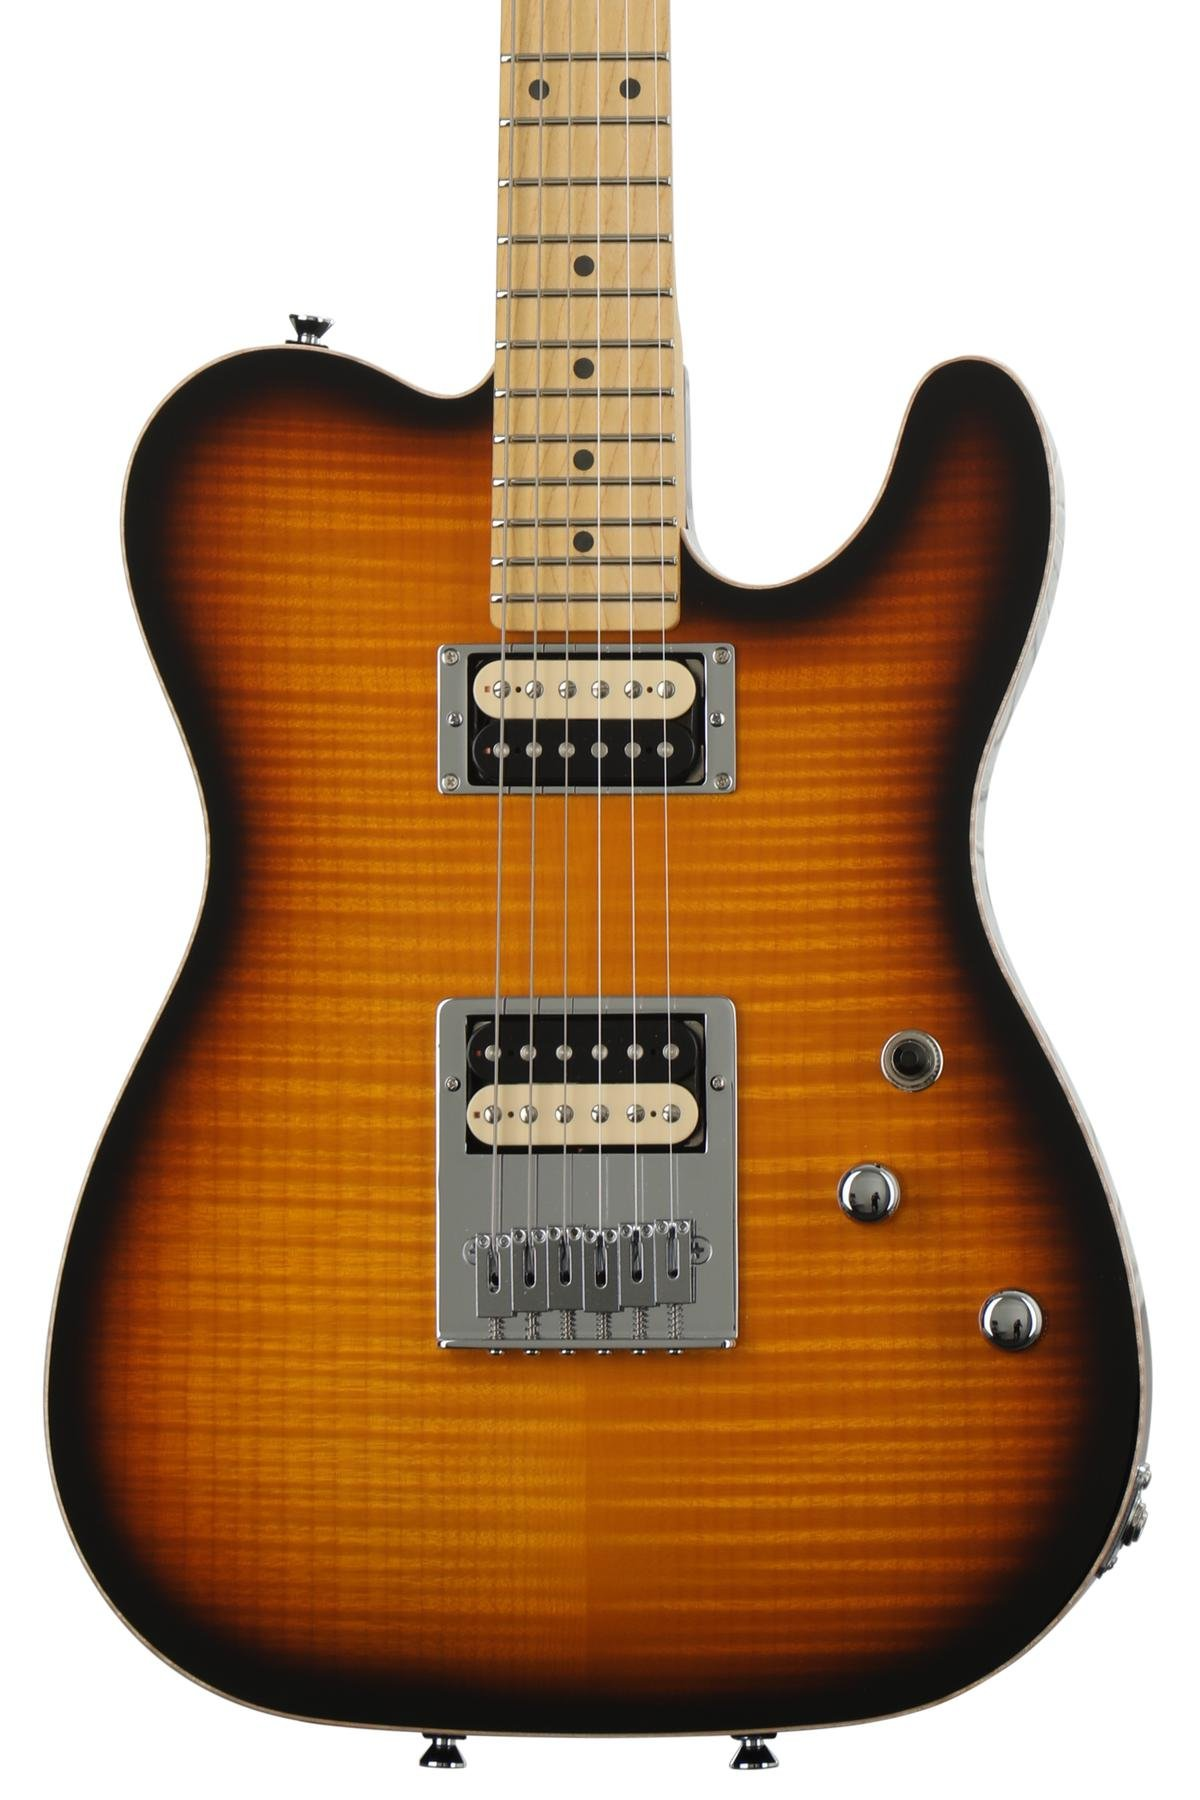 Schecter Usa Pt Custom Tobacco Sunburst Sweetwater Humbuckers 3way Toggle Switch 2 Volumes 1 Tone Coil Tap Series Image